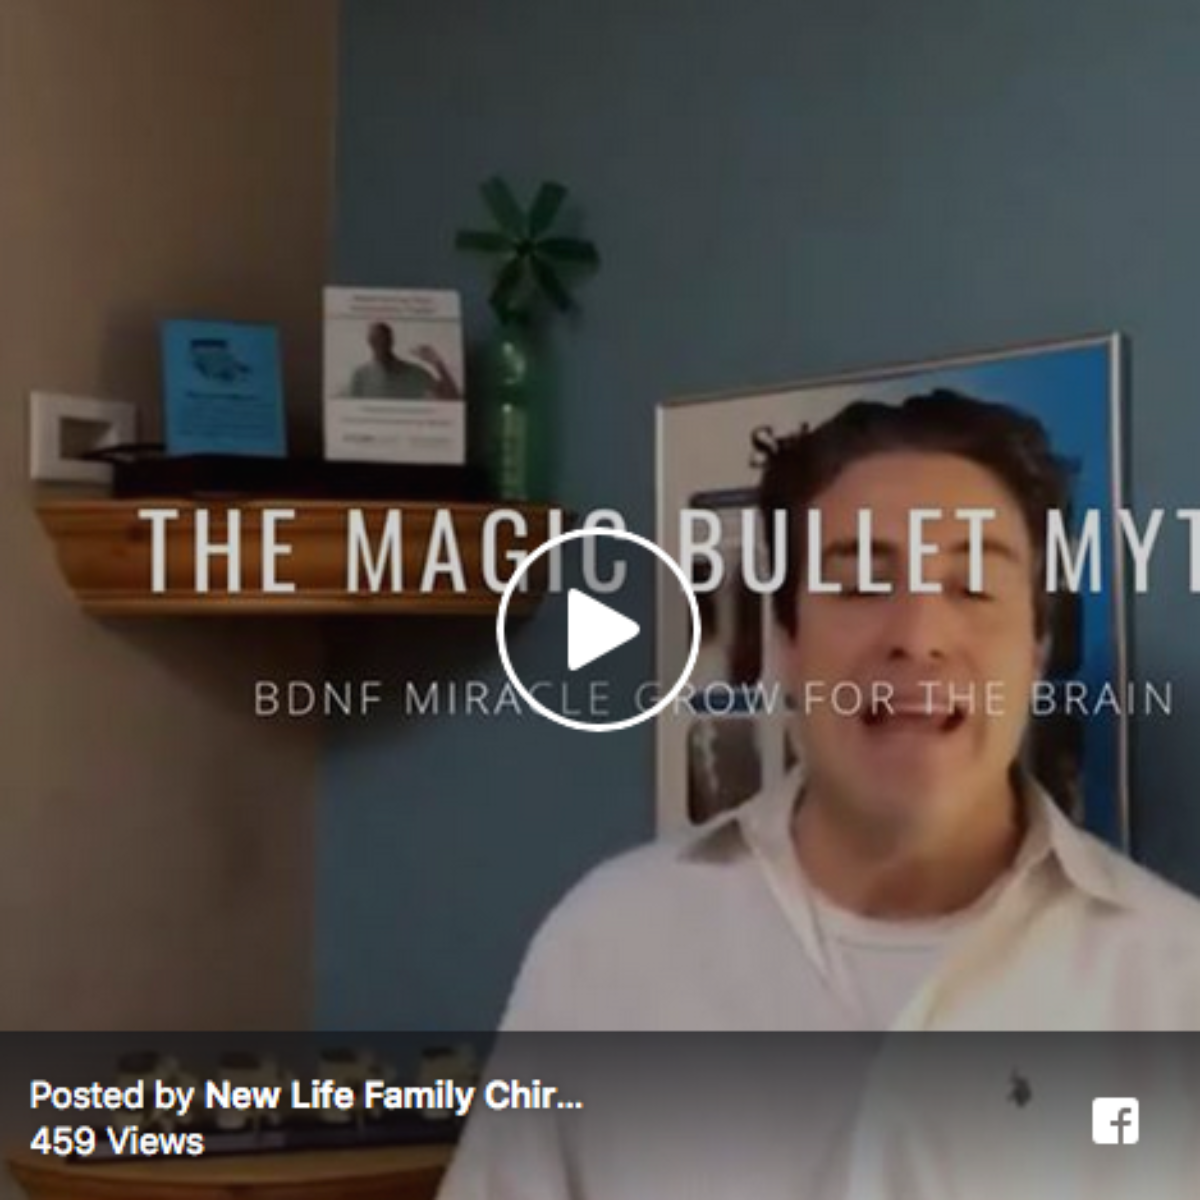 The Magic Bullet Myth: BDNF